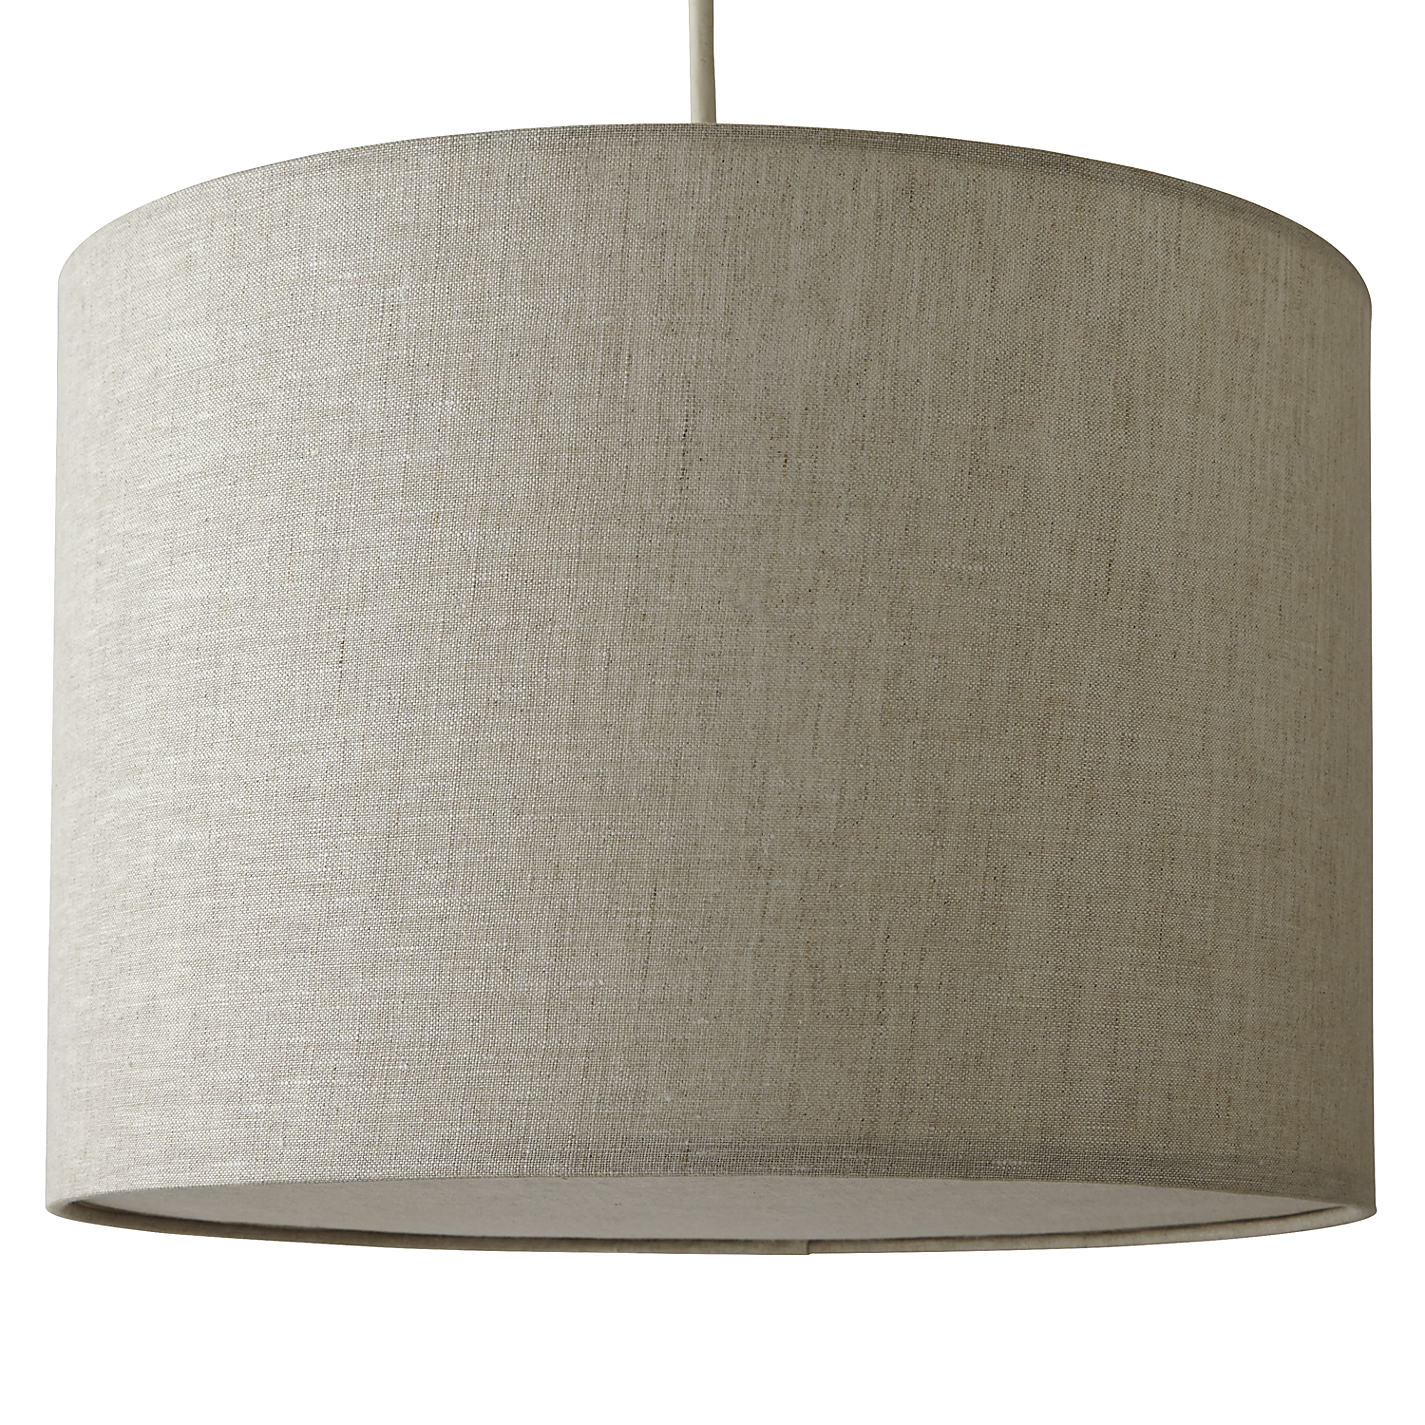 Buy john lewis samantha easy to fit fabric diffuser drum shade buy john lewis samantha easy to fit fabric diffuser drum shade online at johnlewis mozeypictures Gallery